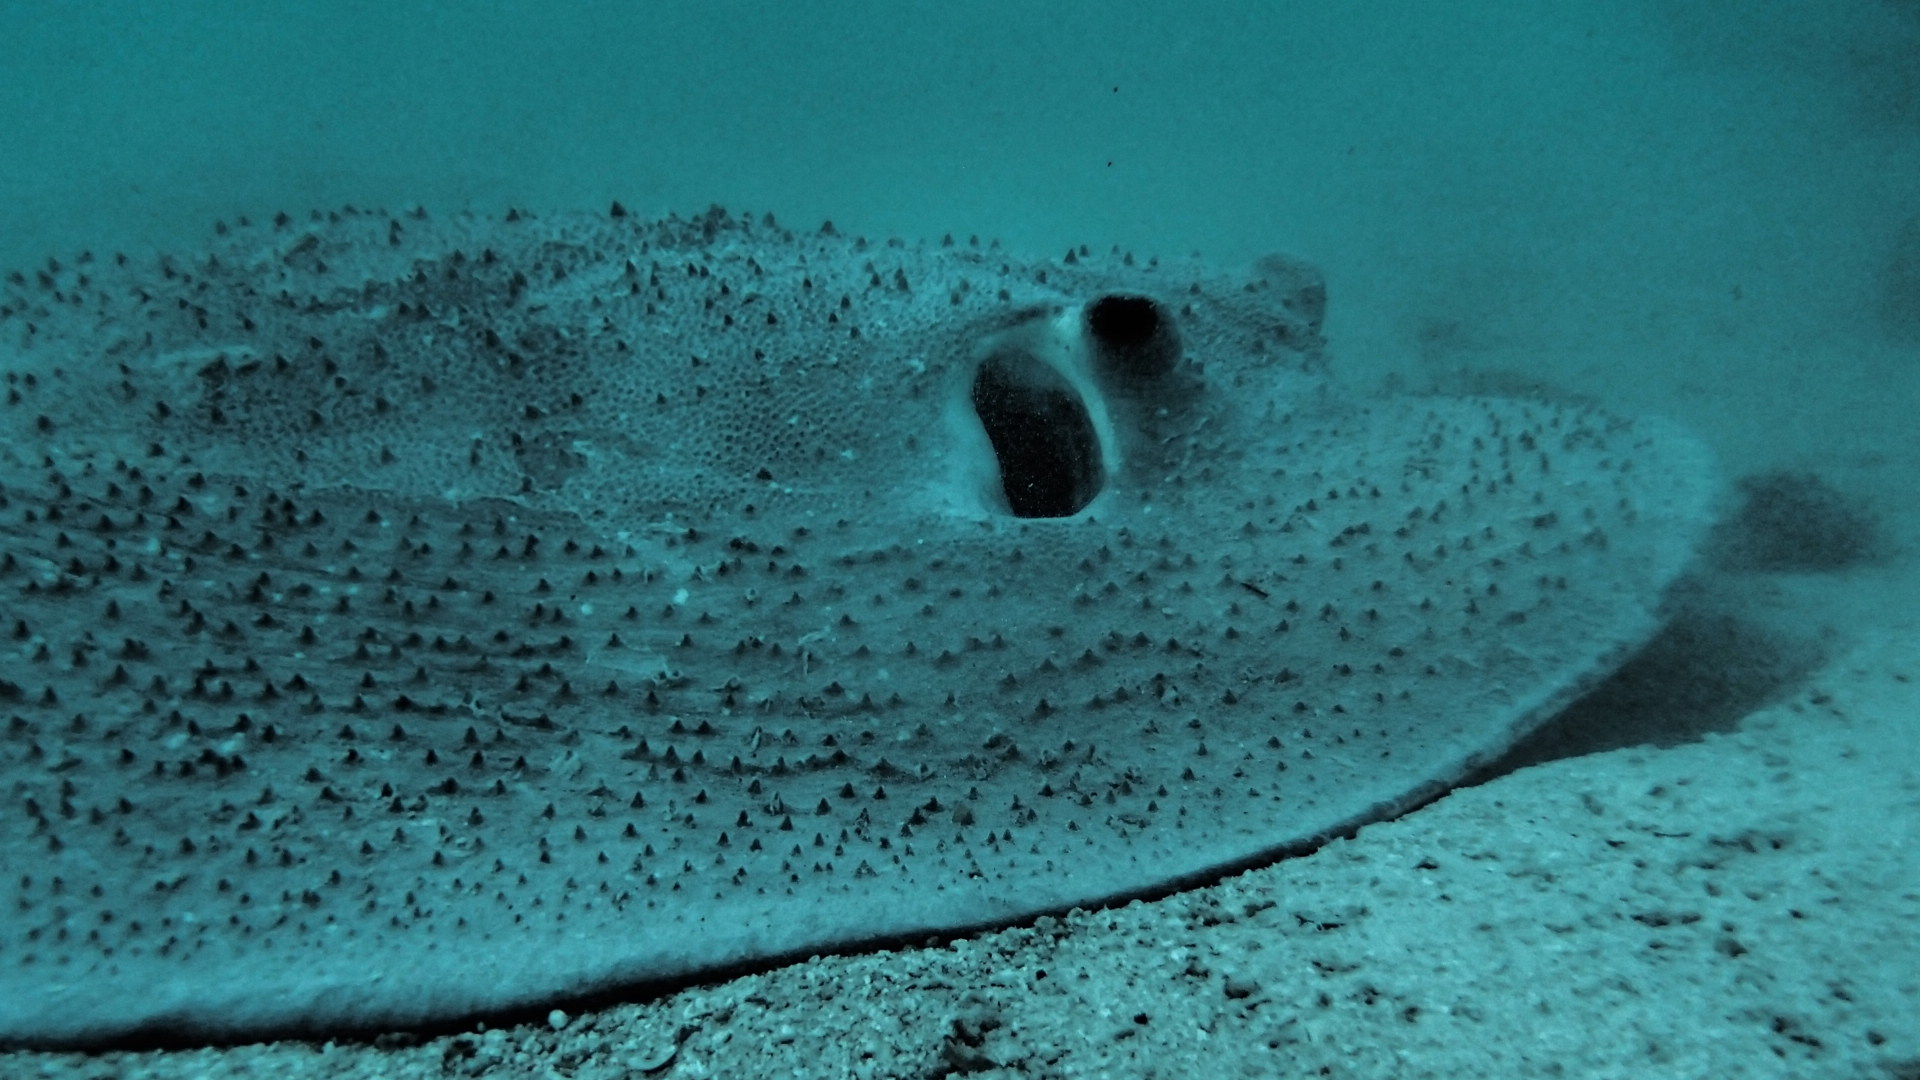 Spiky character: close-up of a porcupine ray. The spines are believed to deter predators.